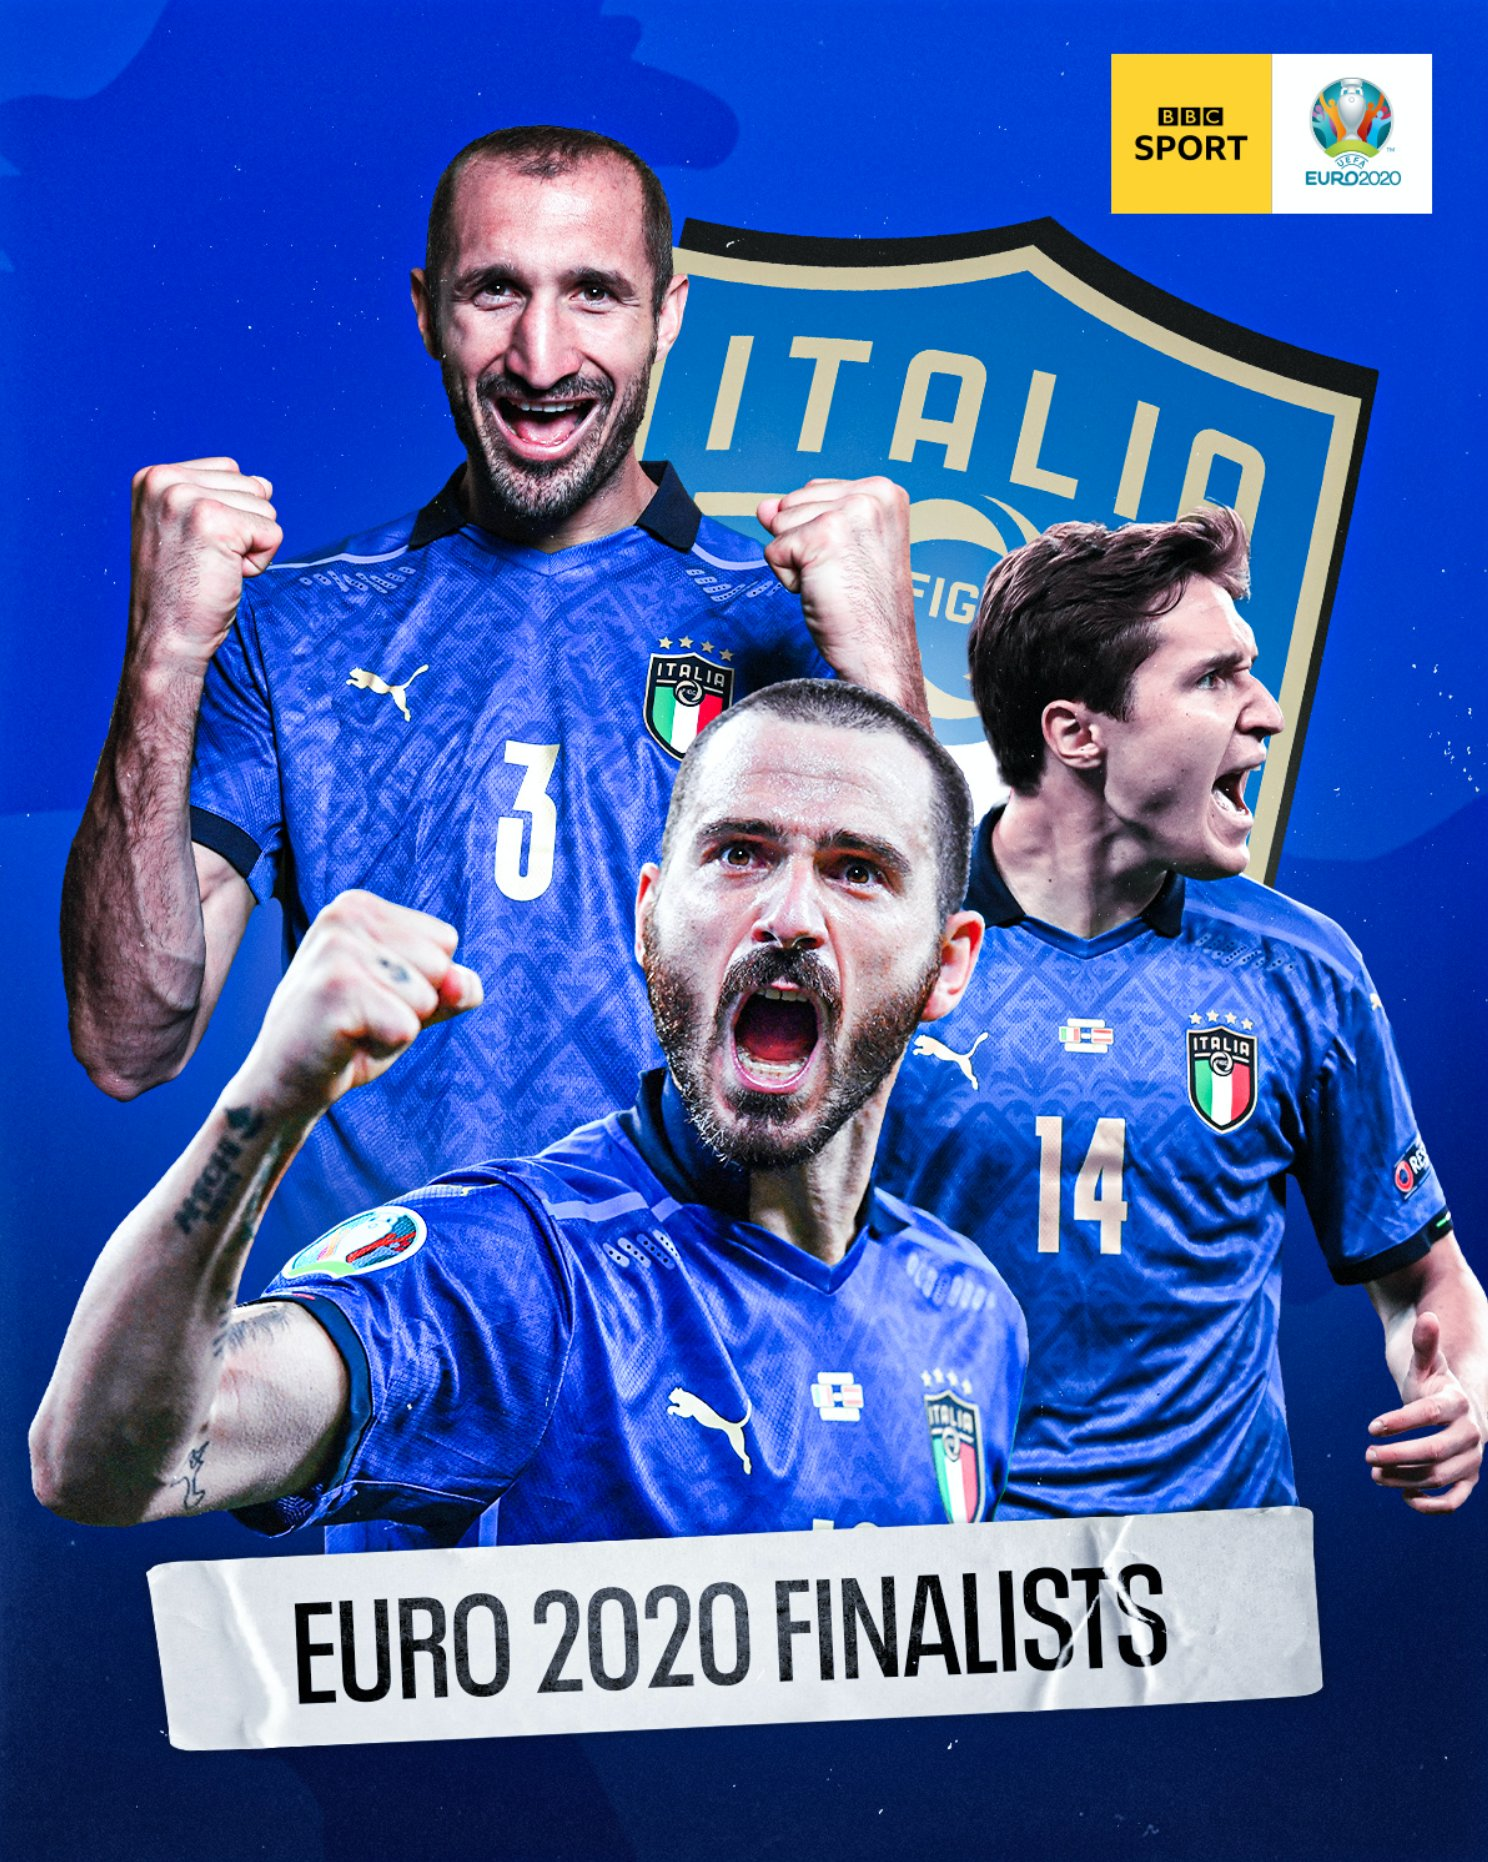 Italy beat Spain to progress to Euro2020 finals